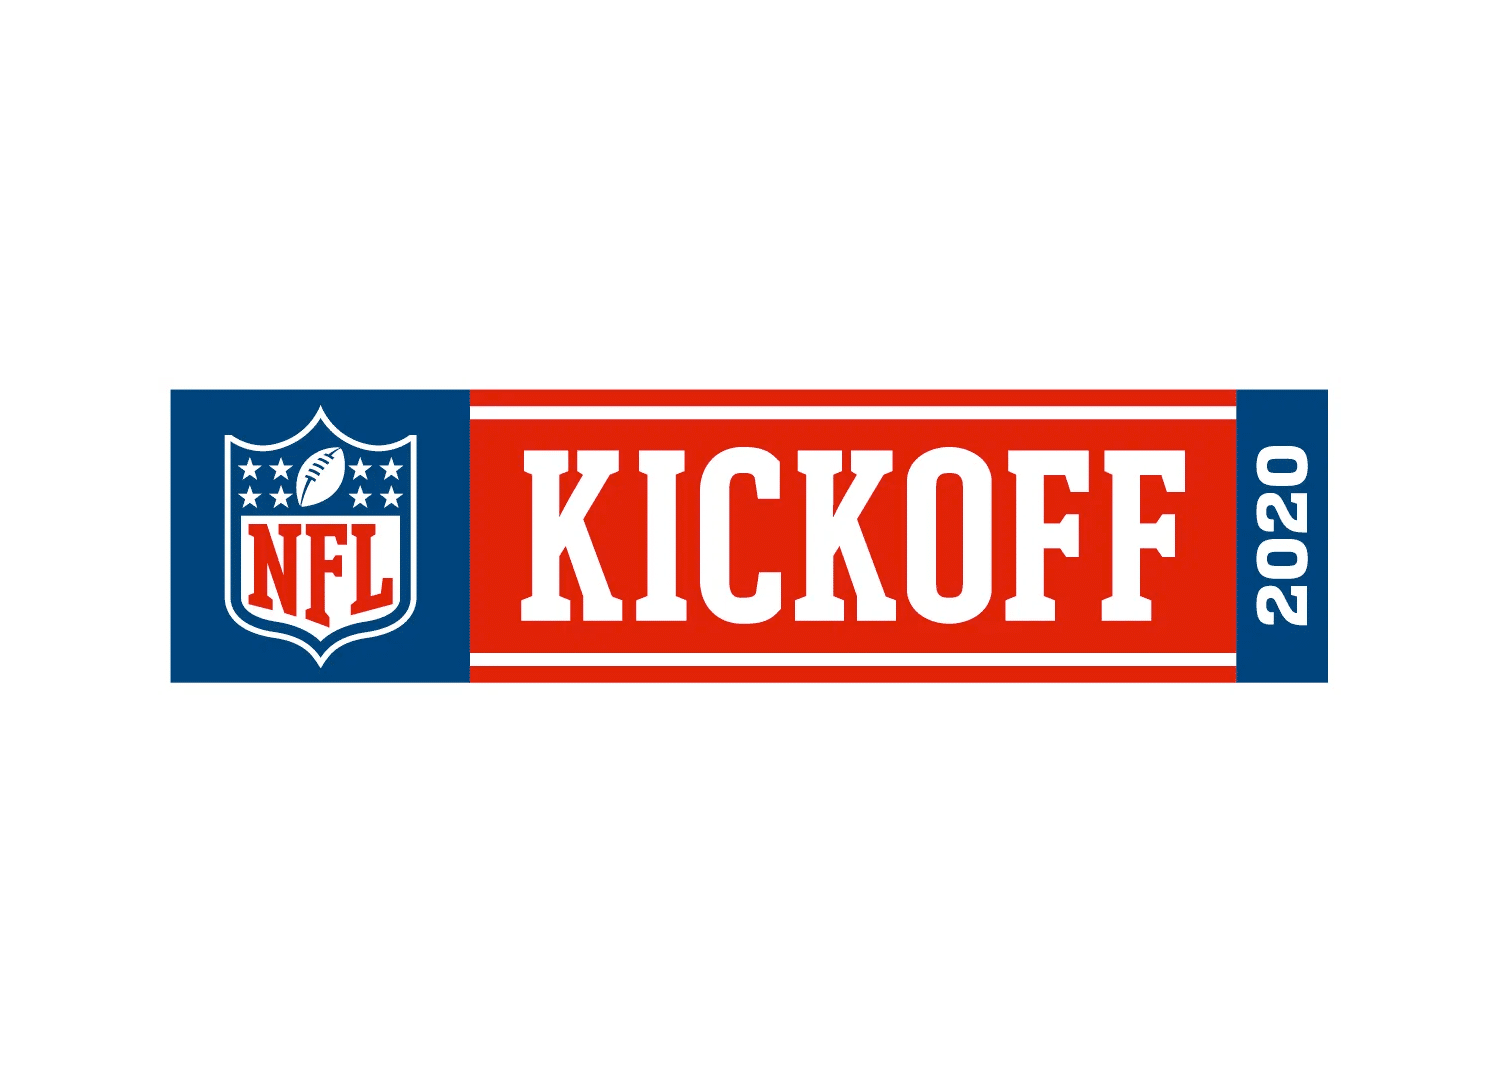 Nfl Kickoff Game Ratings Down But Not Bad Sports Media Watch